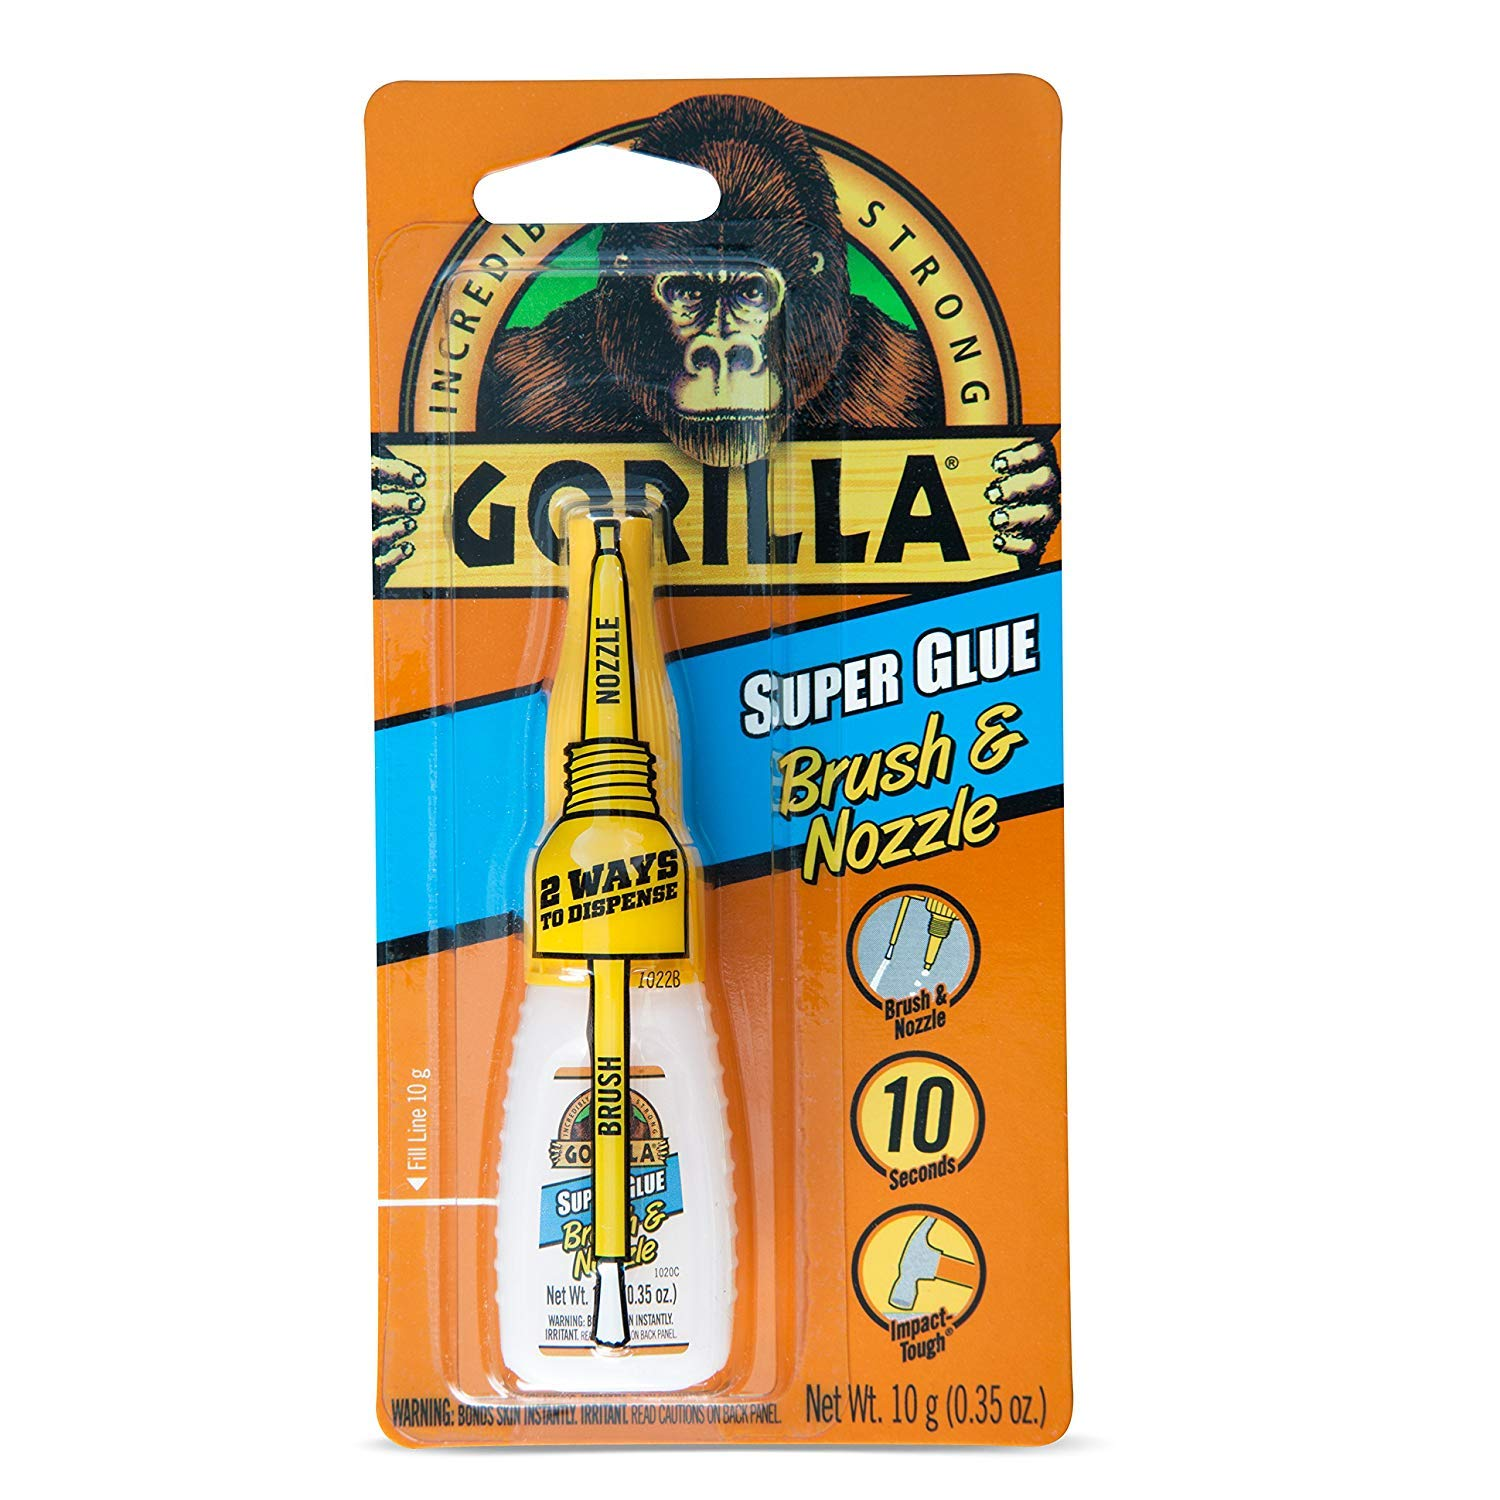 Gorilla Super Glue with Brush & Nozzle Applicator, 10 Gram, Clear, (24 Pack)